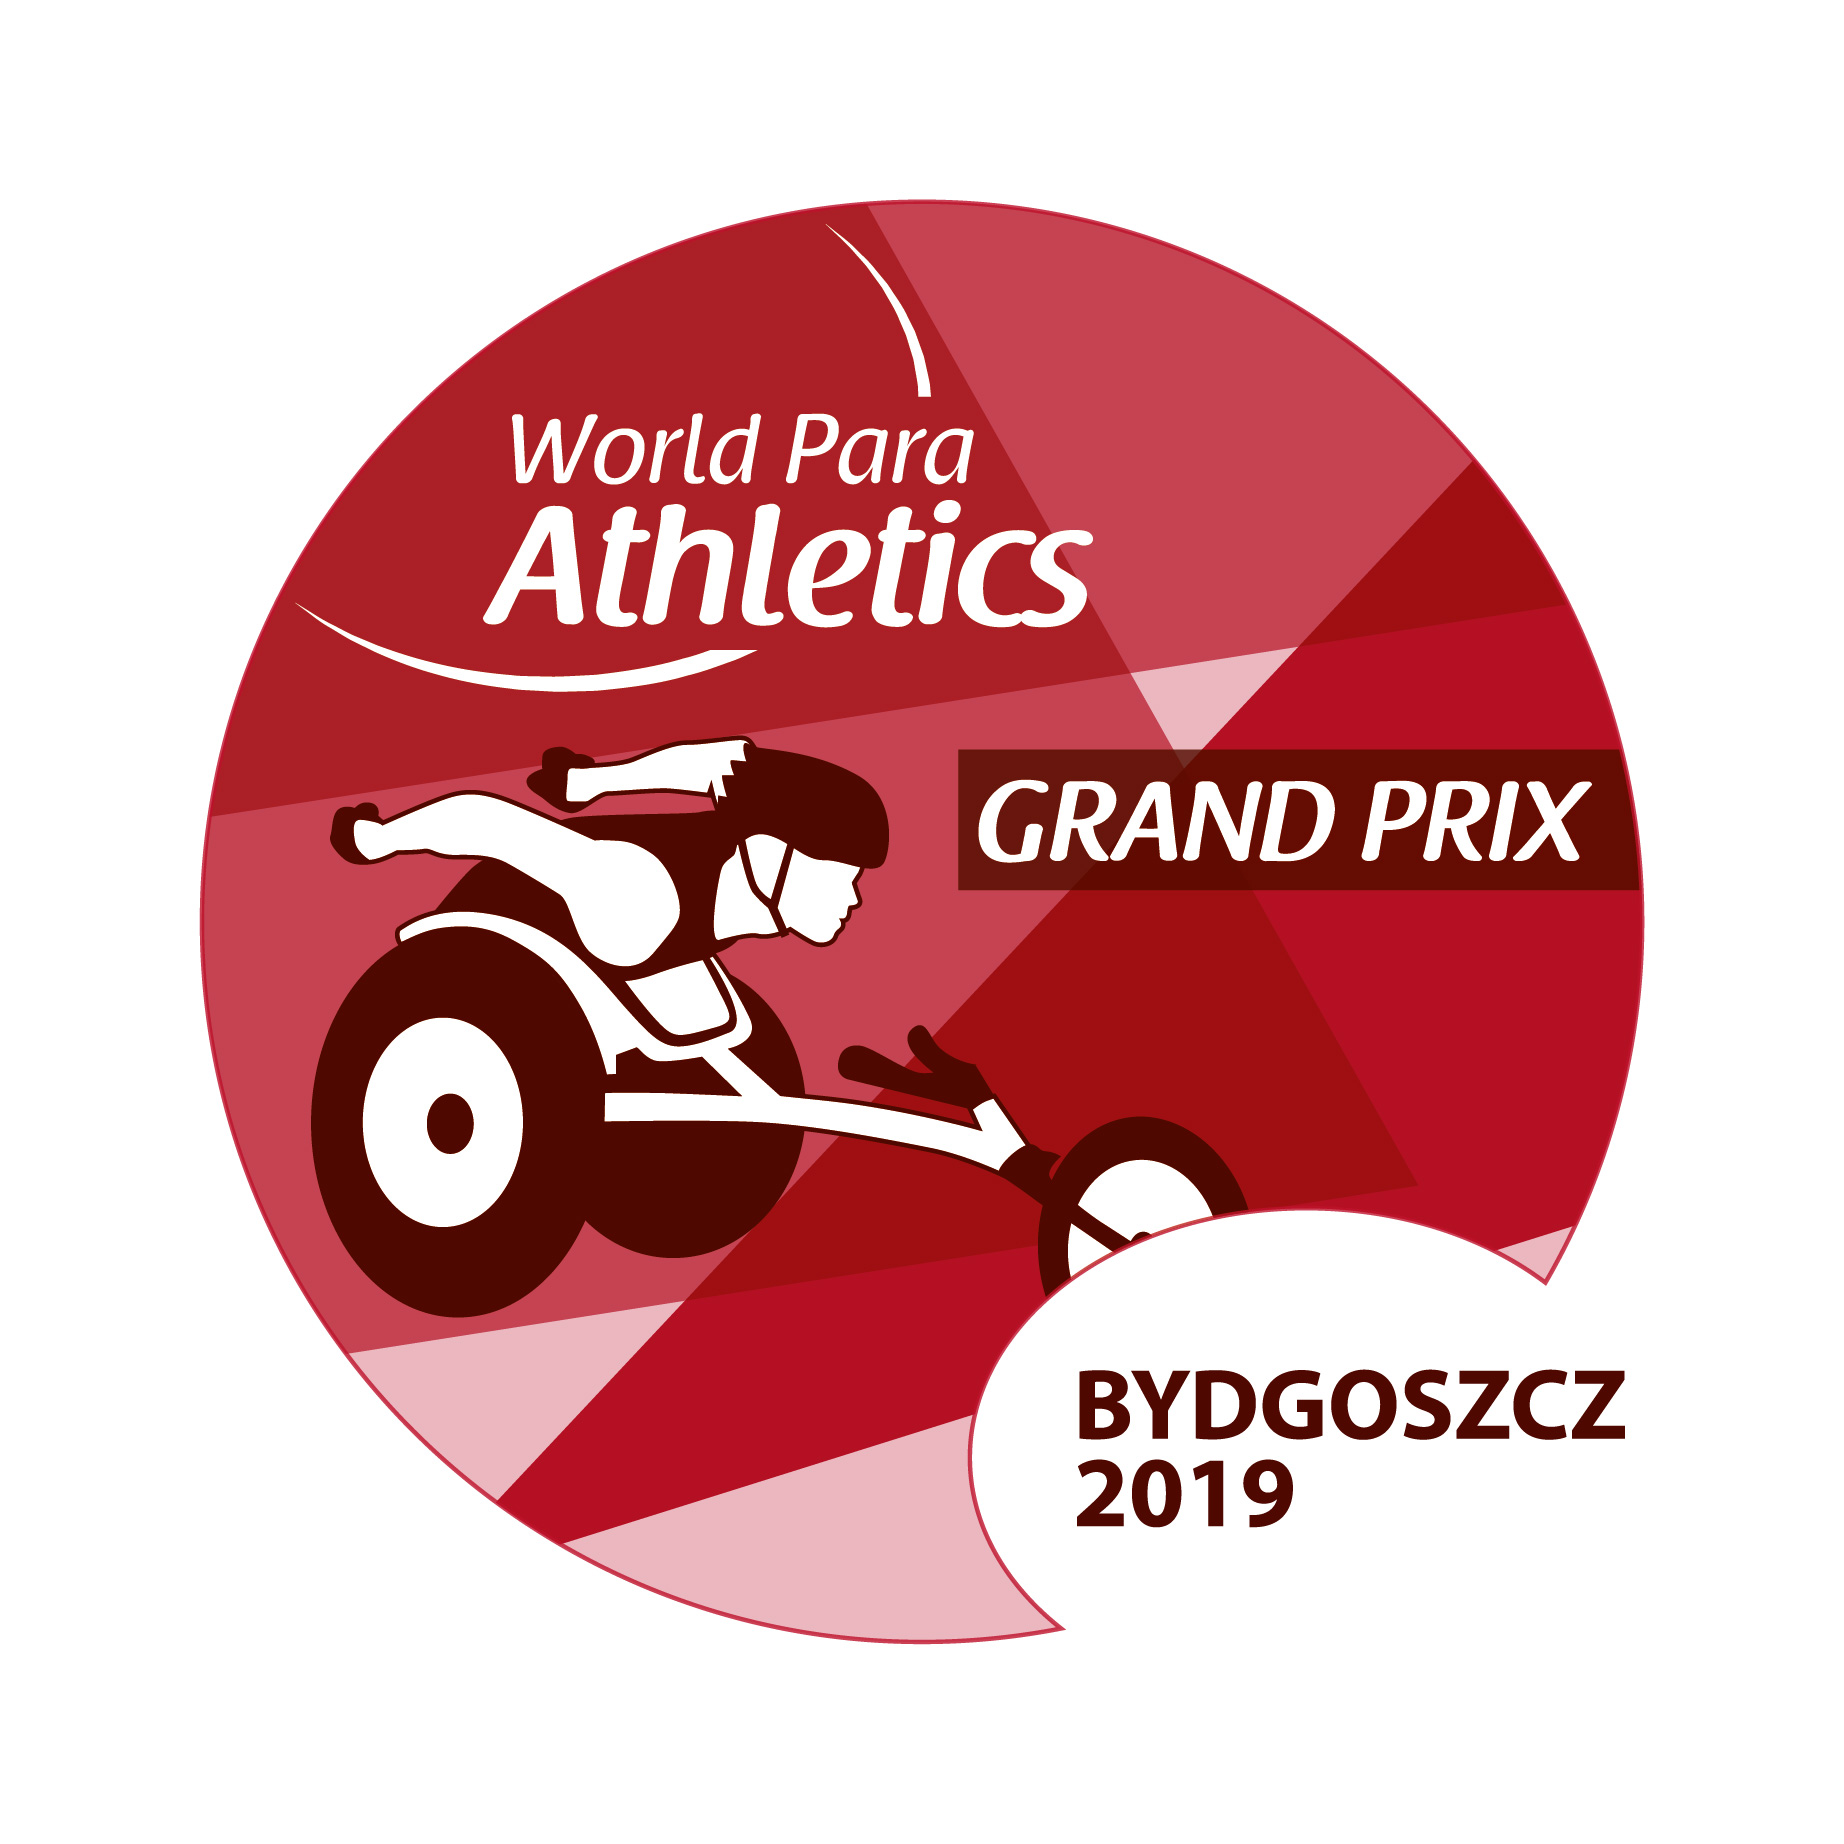 Polska organizatorem Grand Prix World Para Athletics!